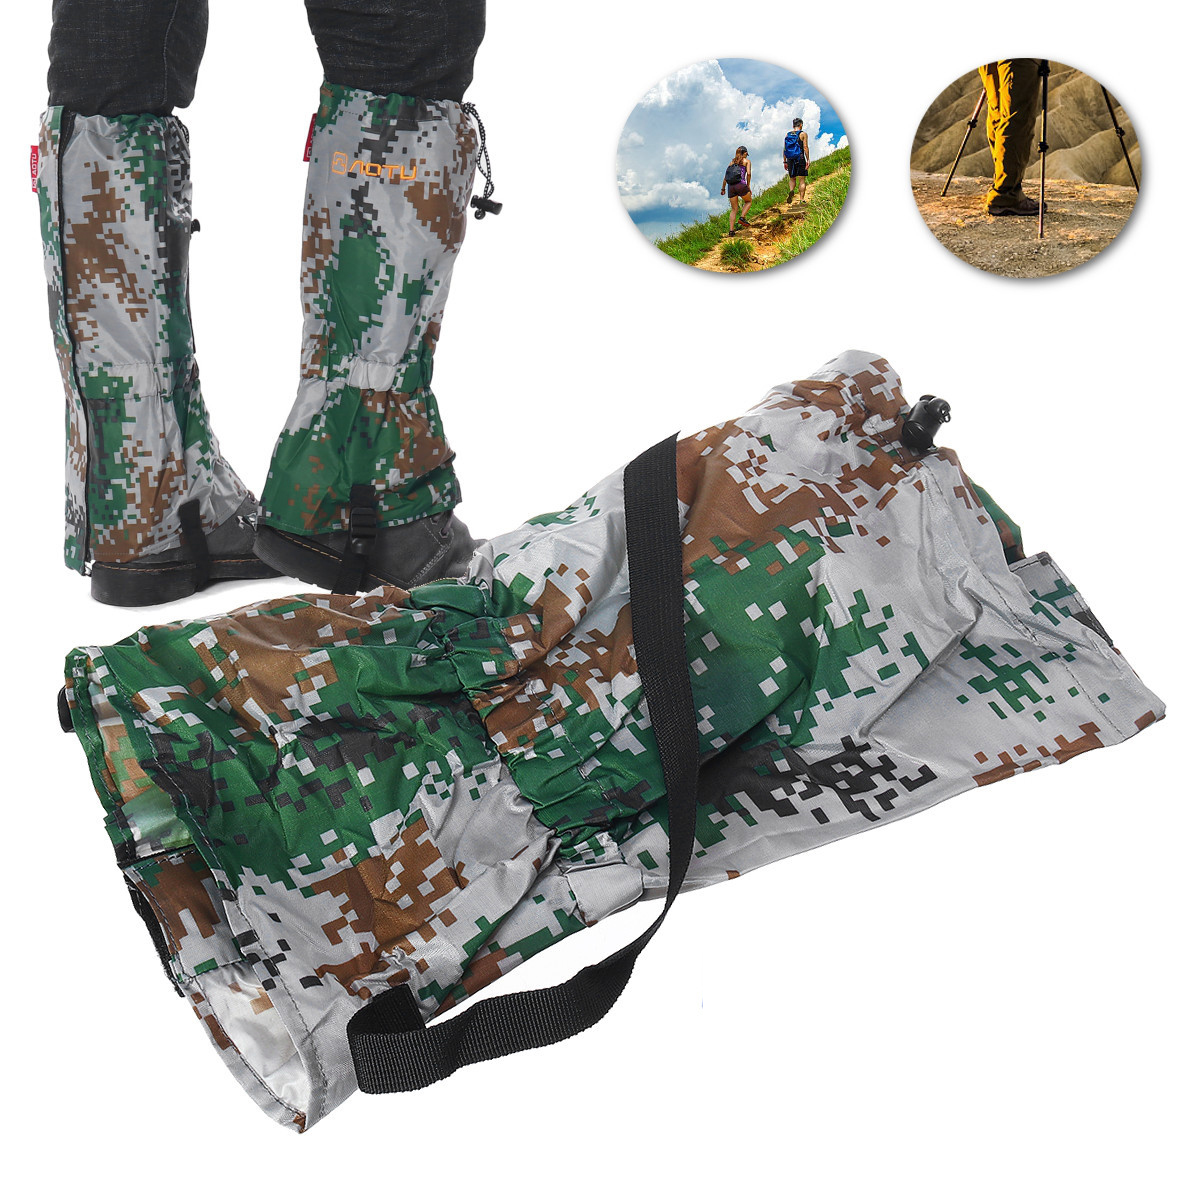 1 Pair Outdoor Hiking Shoe Covers Snowproof Waterproof Mud proof